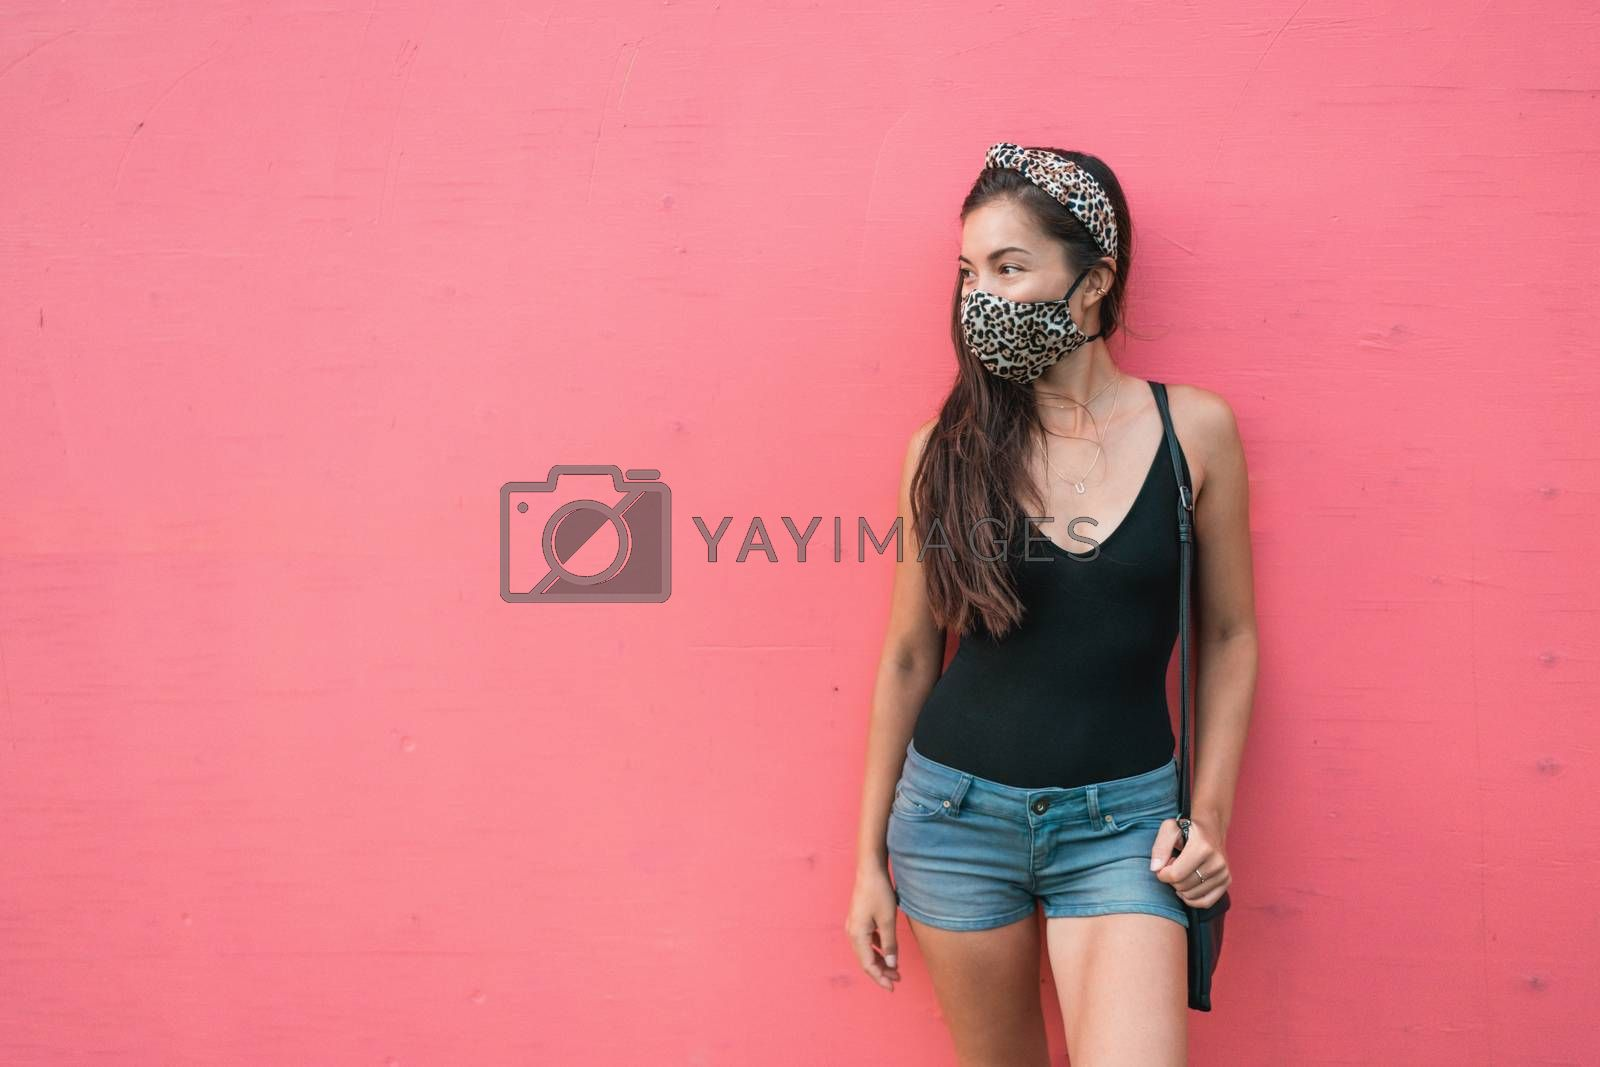 Mask wearing is mandatory in indoor spaces and public park for C by Maridav